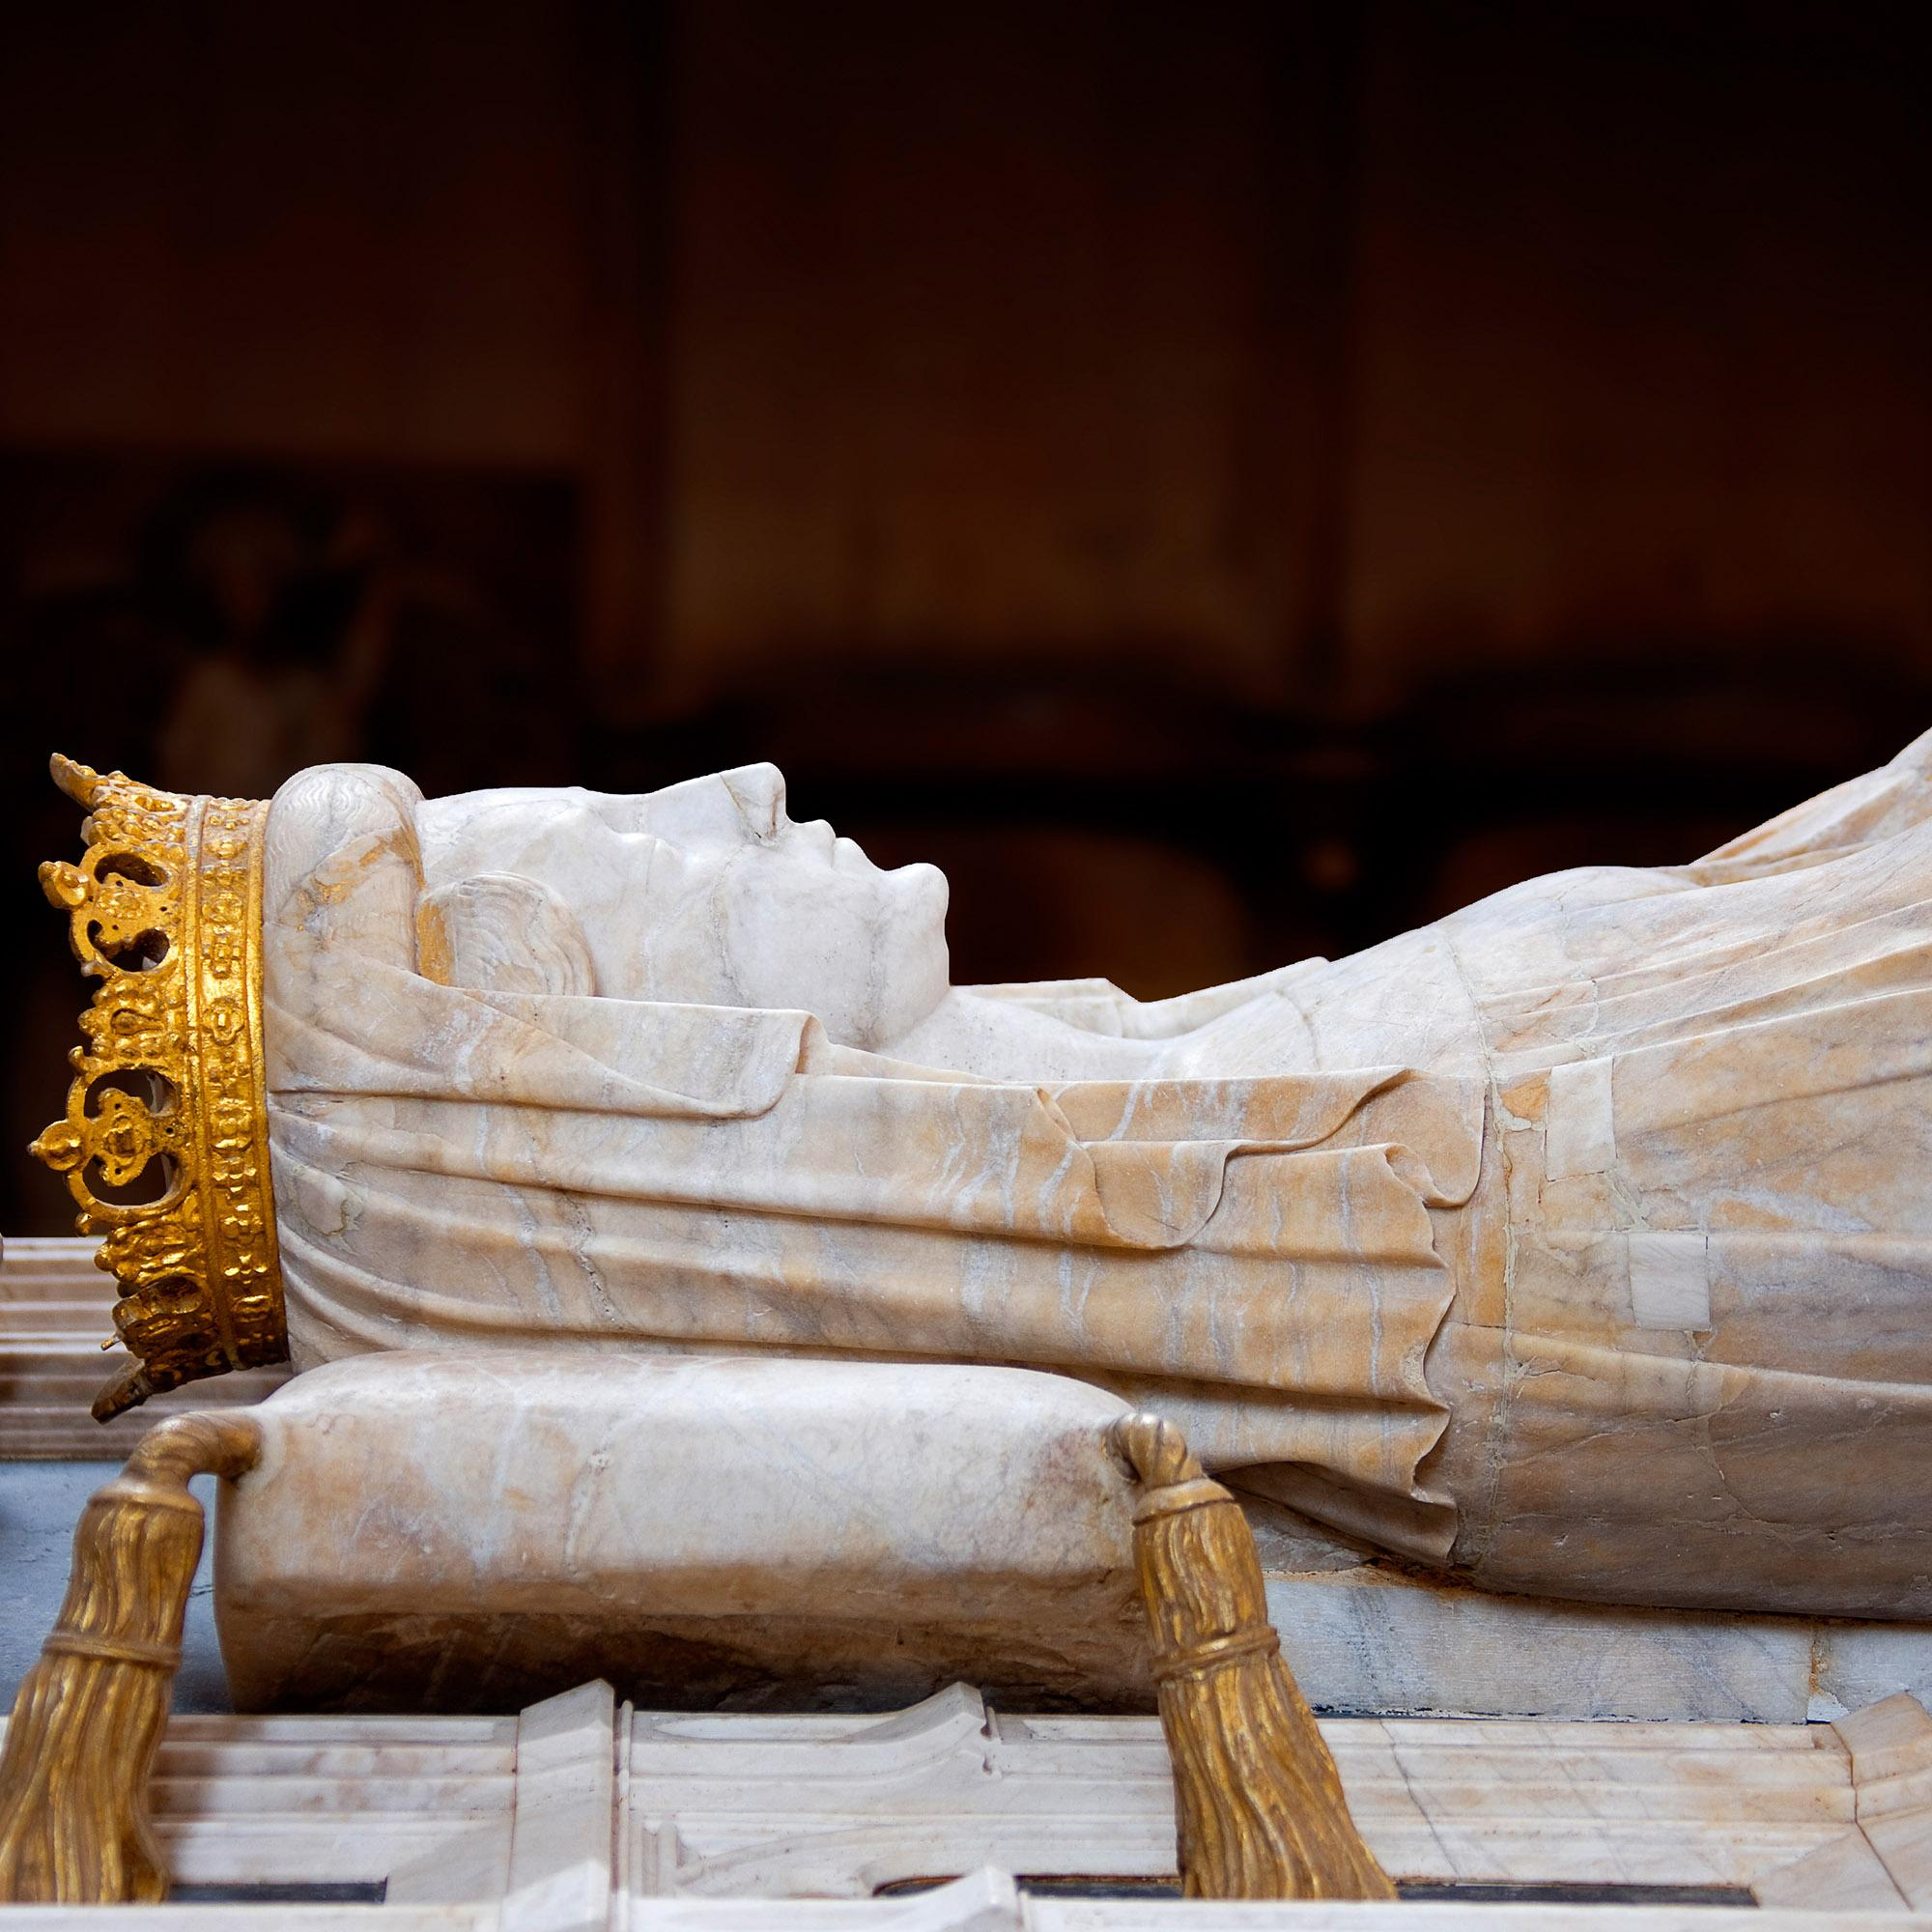 The sarcophagus of Queen Margrethe the 1st, who united Denmark, Norway, and Sweden under Danish rule in 1397. The act sparked 400 years of Danish-Swedish rivalry. – © Jan Friis